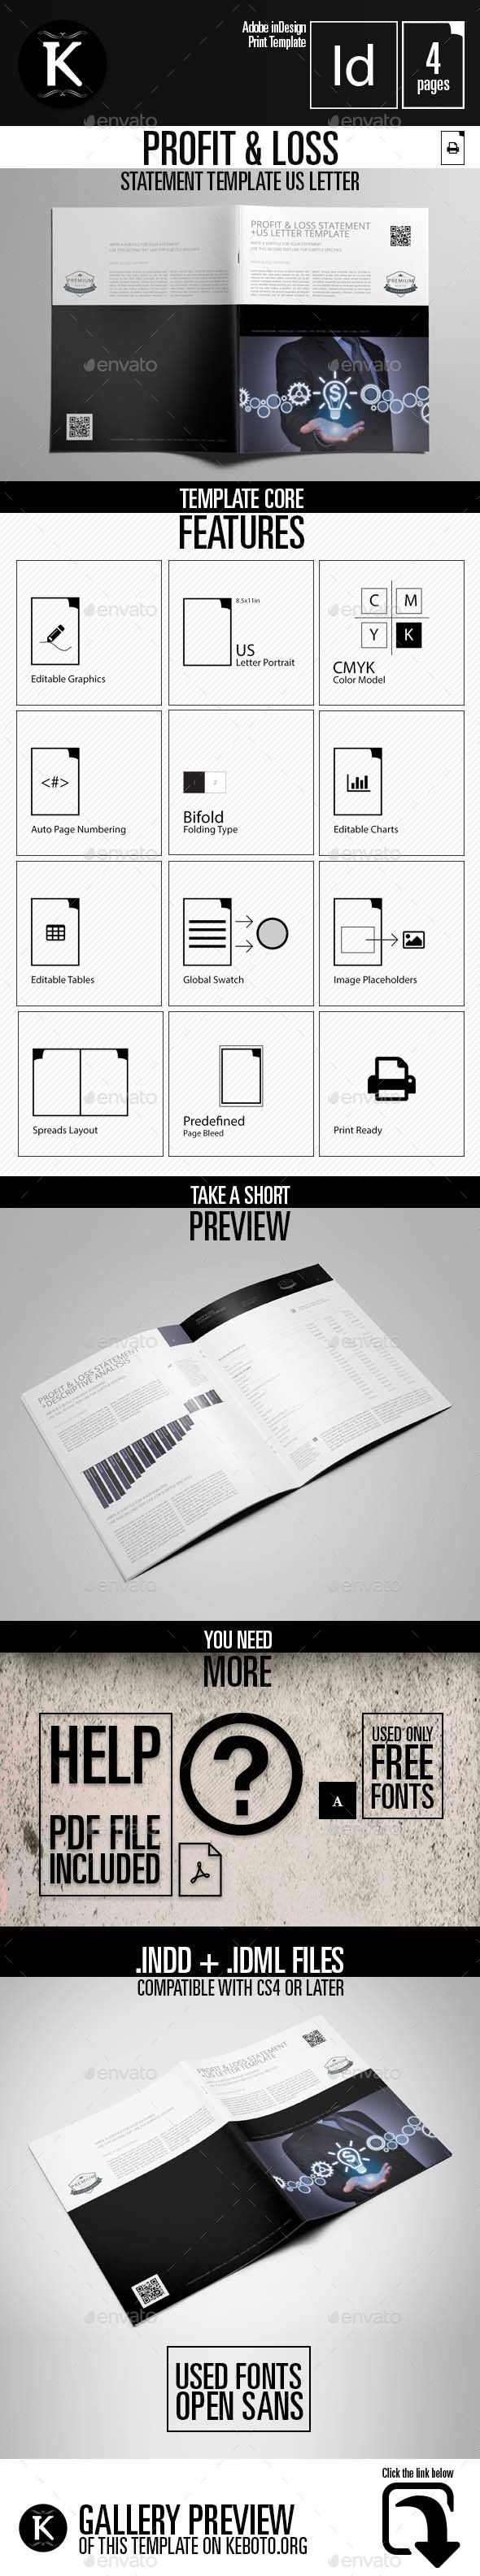 Generic Profit And Loss Statement 70 Best Templates Images On Pinterest  Patterns Branding Design .